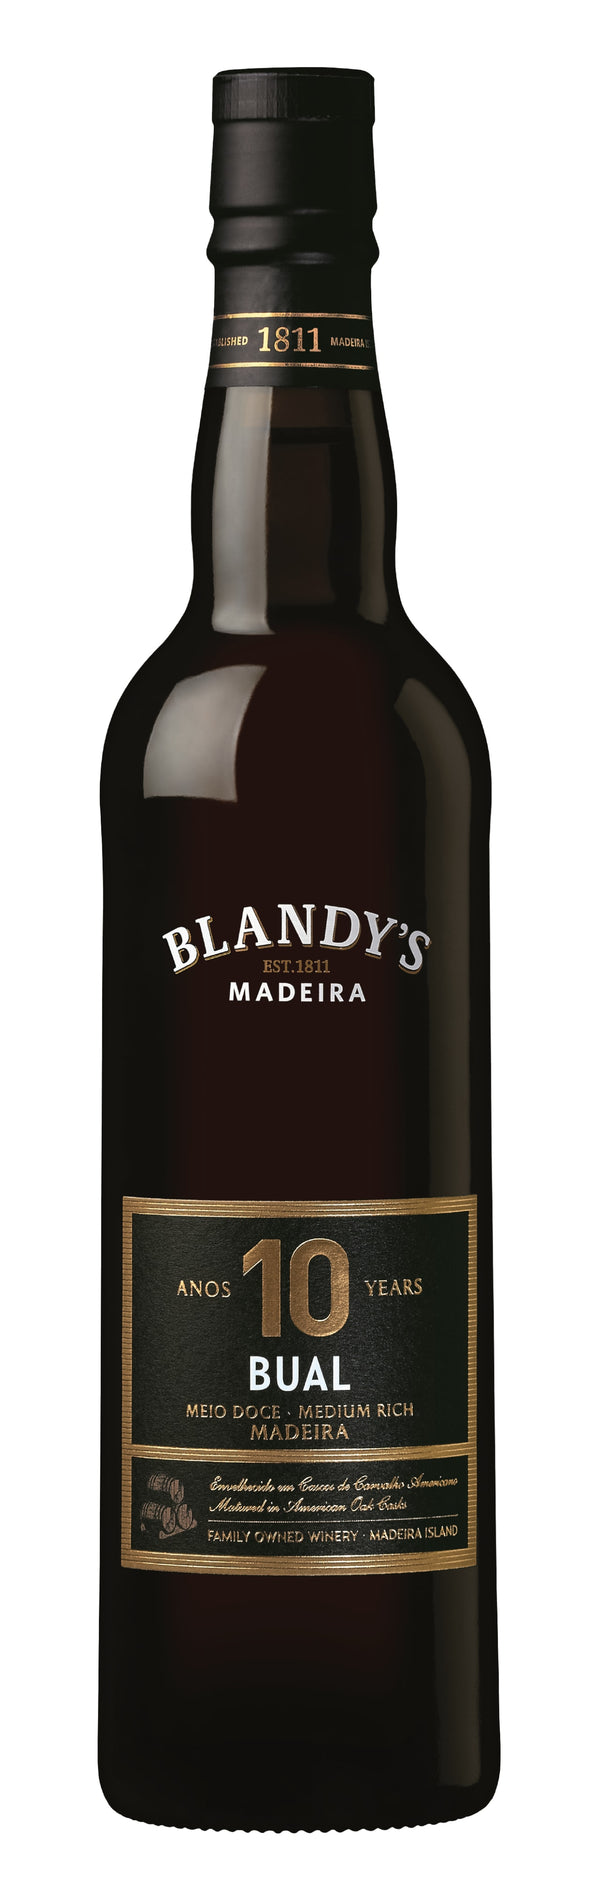 Blandy's 10 Year Old Bual Madeira 500ML